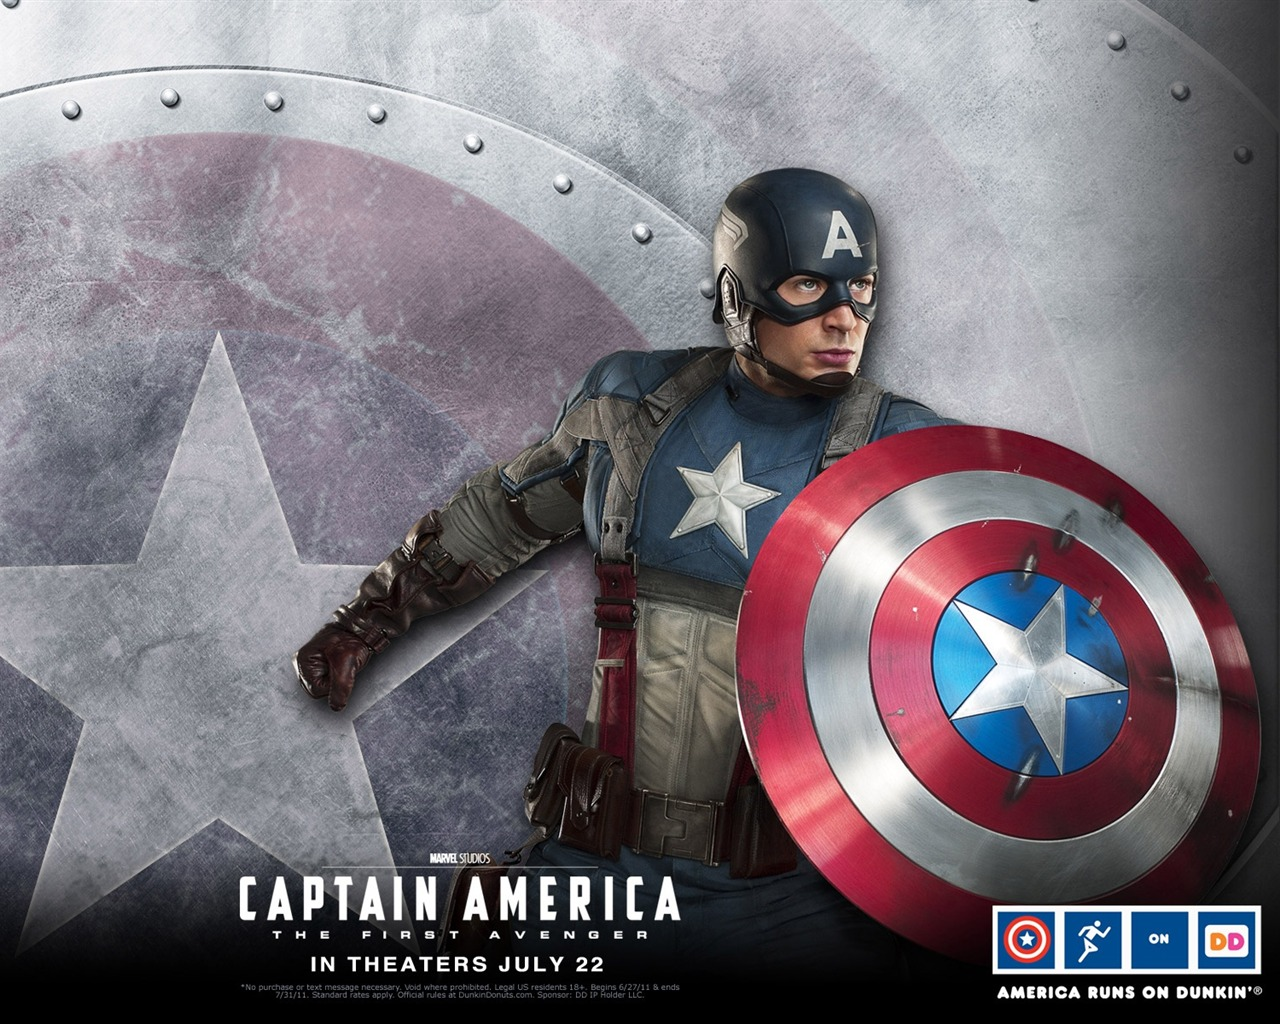 Captain America | All the action from the casino floor: news, views and more